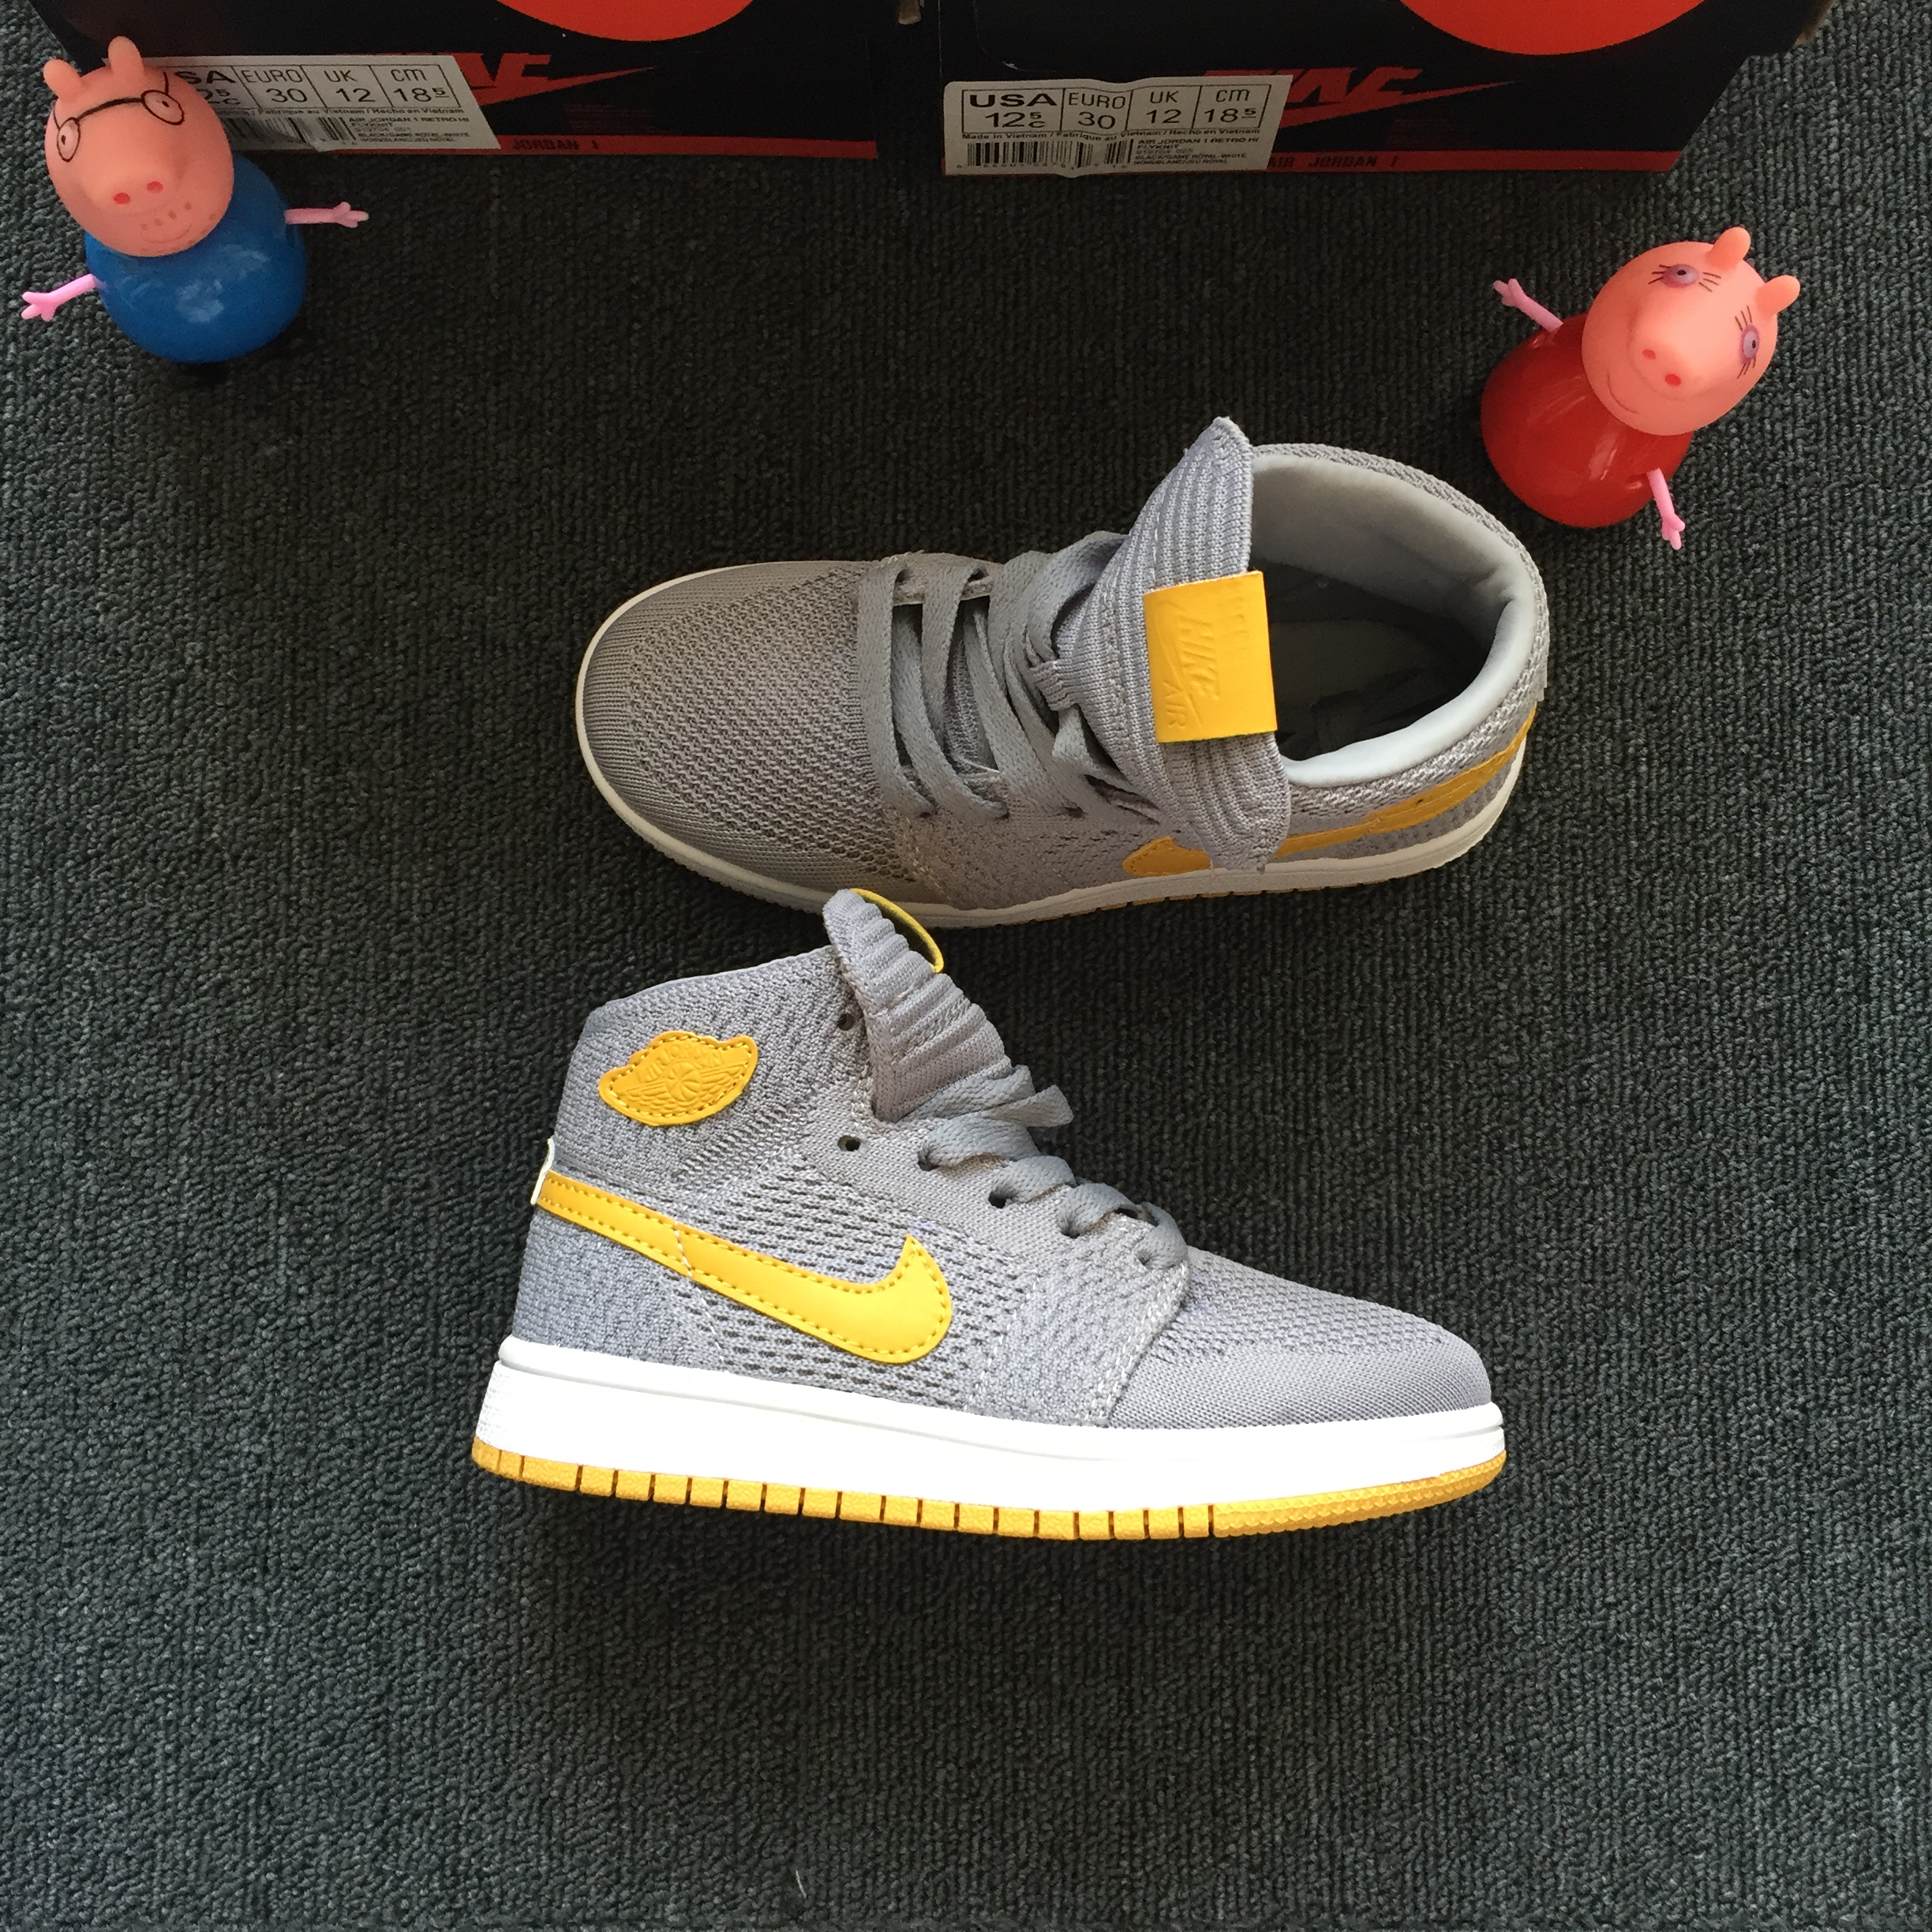 2018 Air Jordan 1 Knit Grey Yellow Shoes For Kids